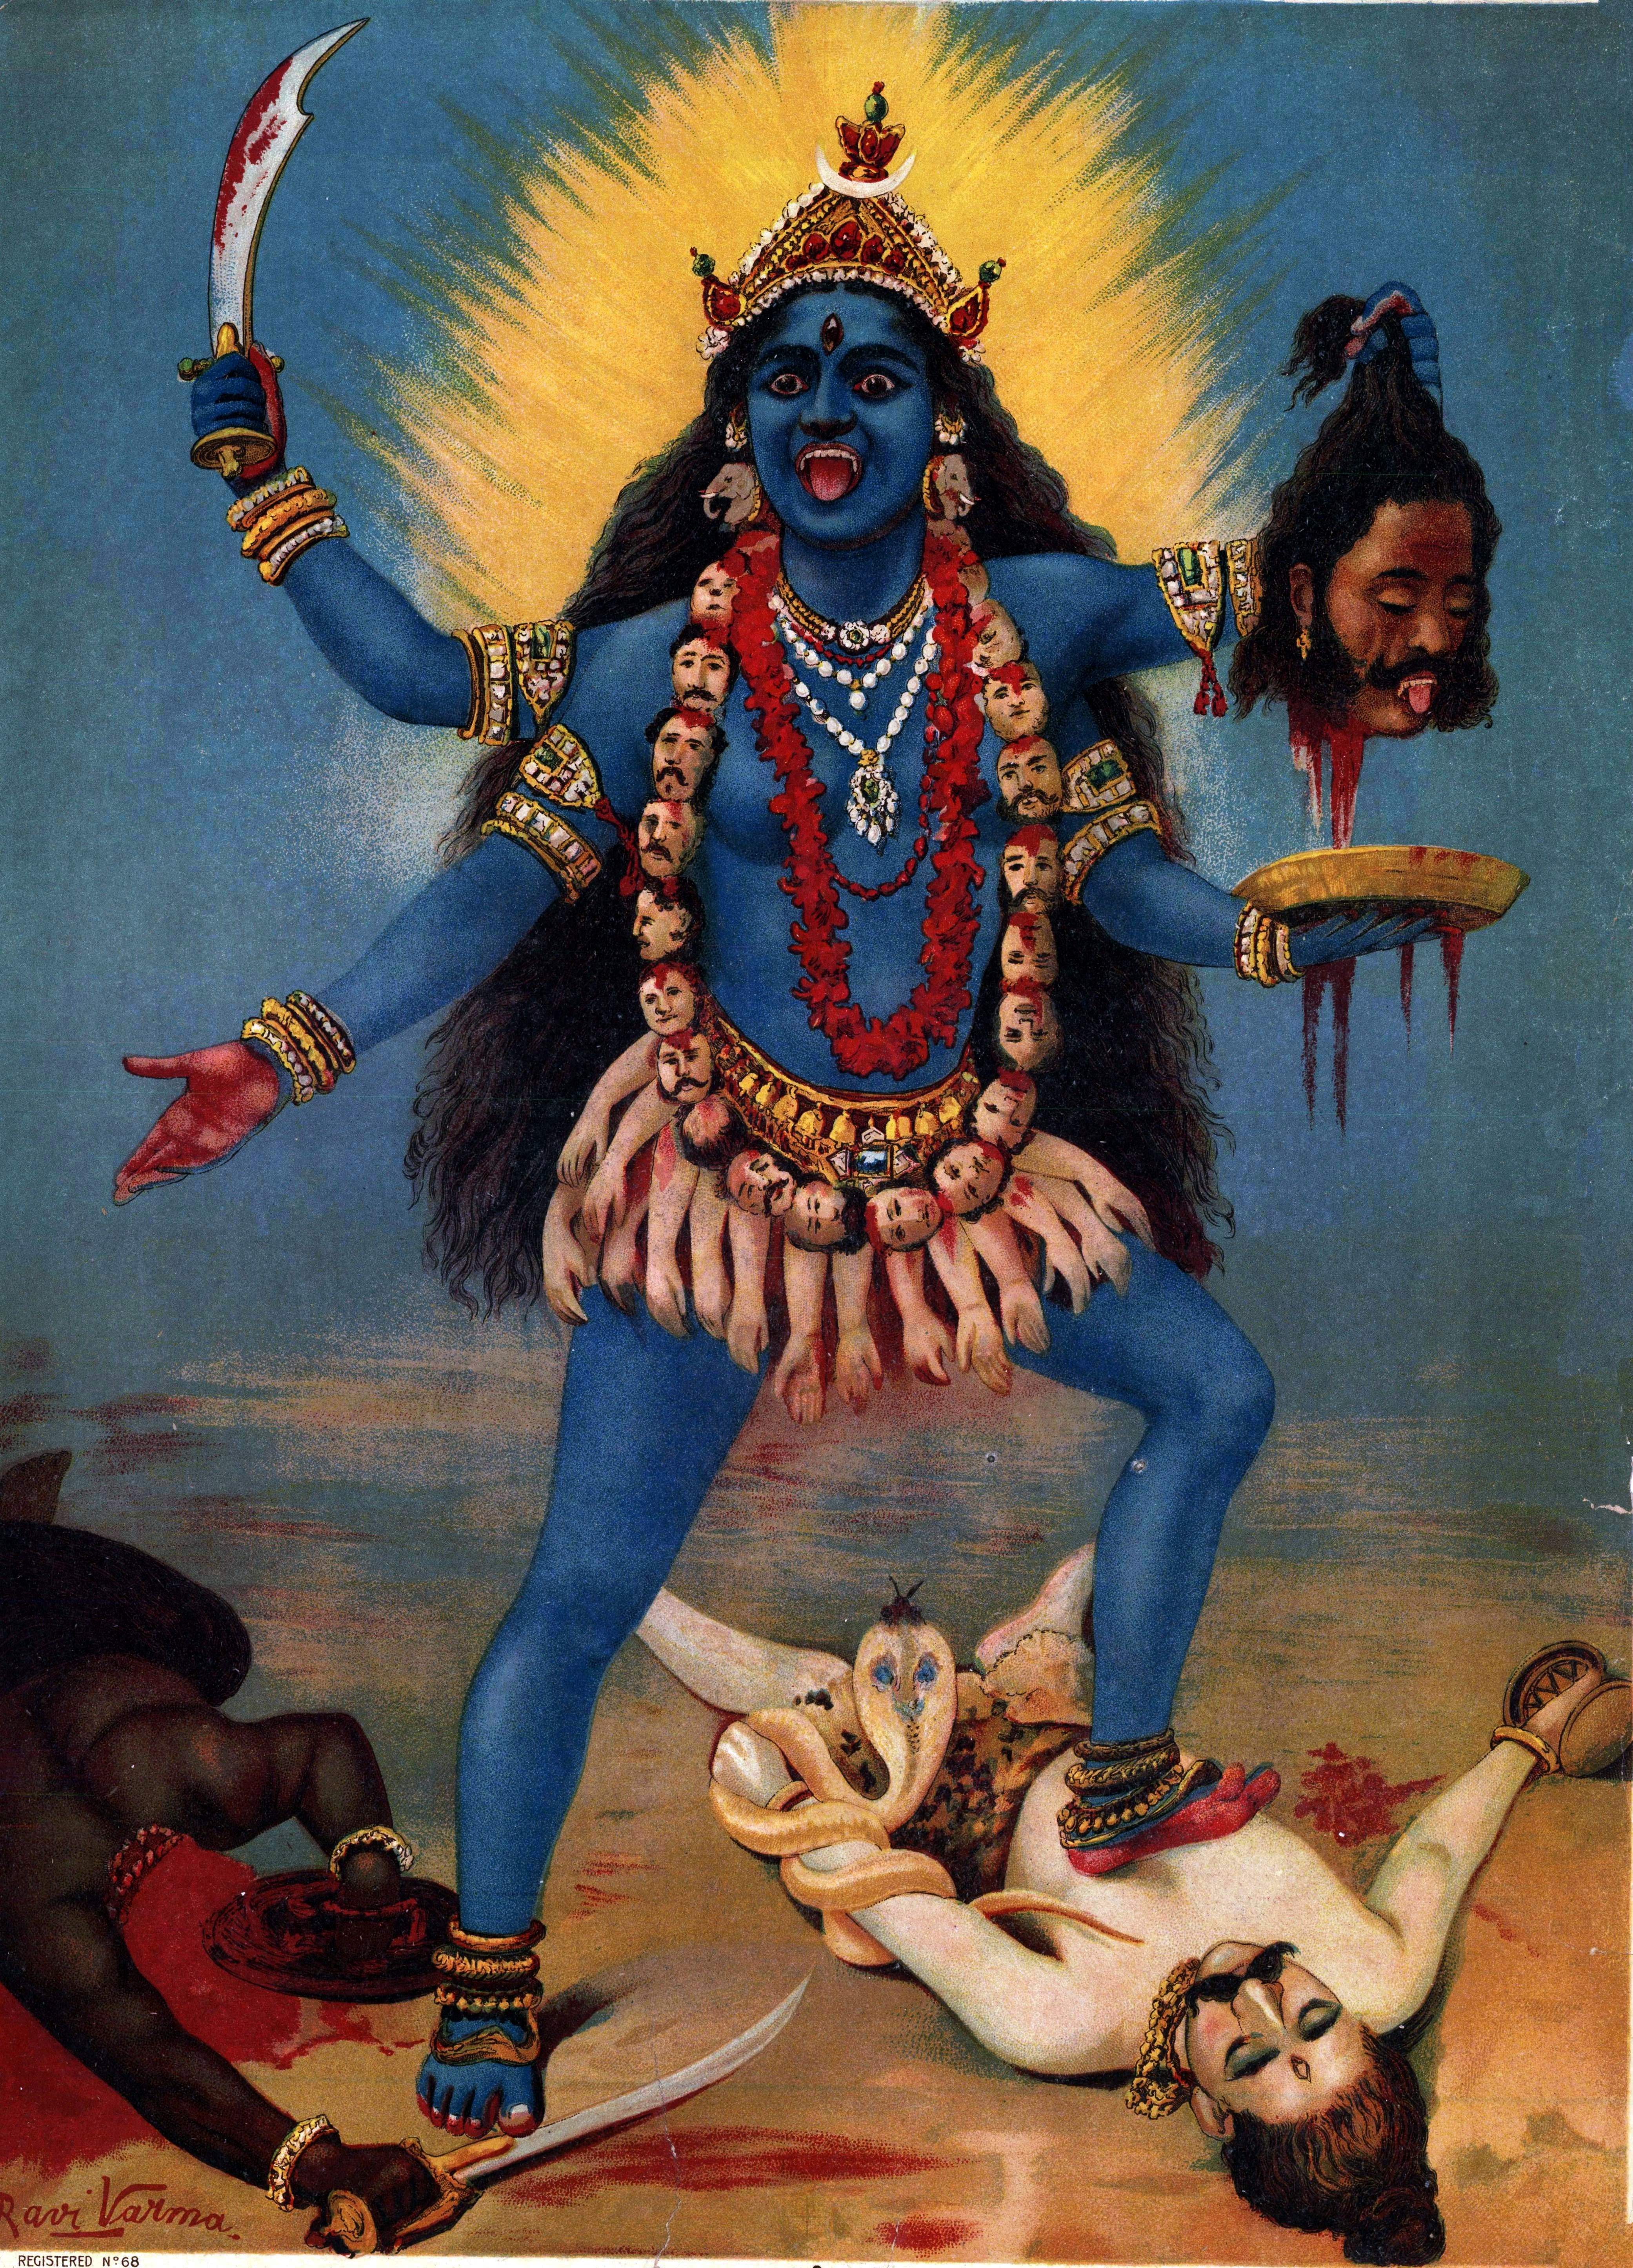 http://upload.wikimedia.org/wikipedia/commons/8/89/Kali_by_Raja_Ravi_Varma.jpg